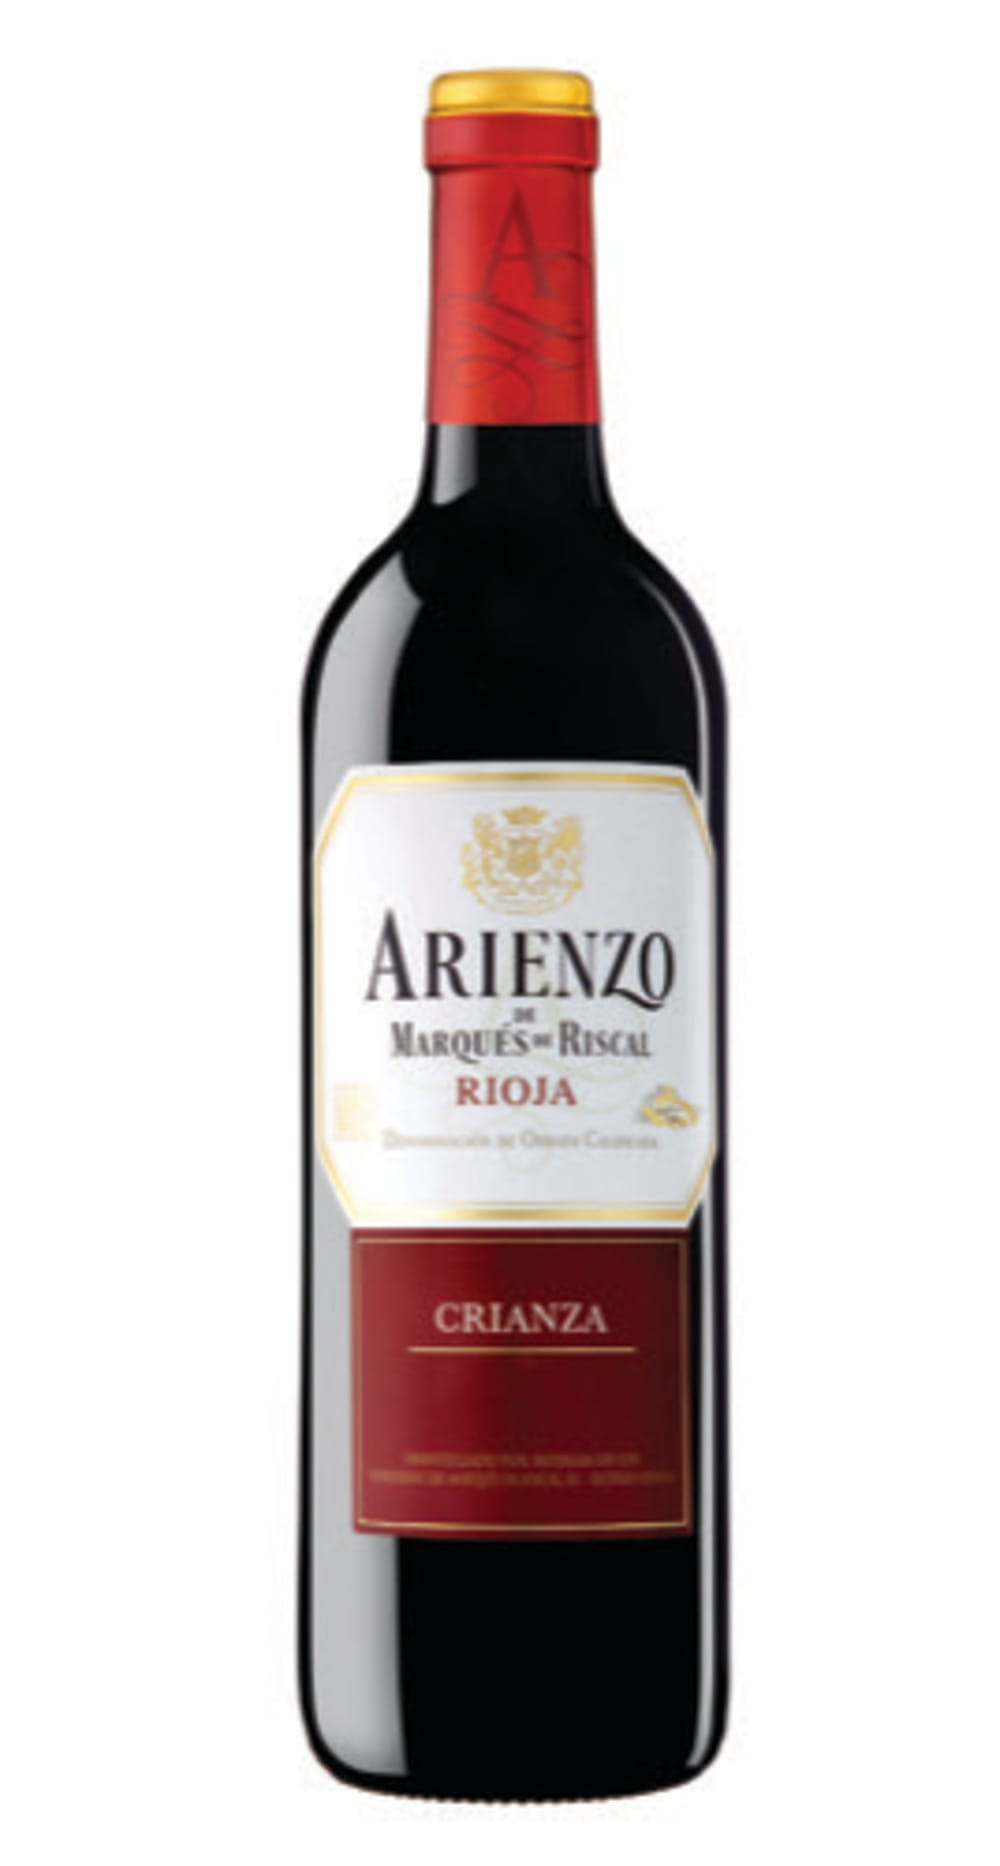 Bottle of Crianza